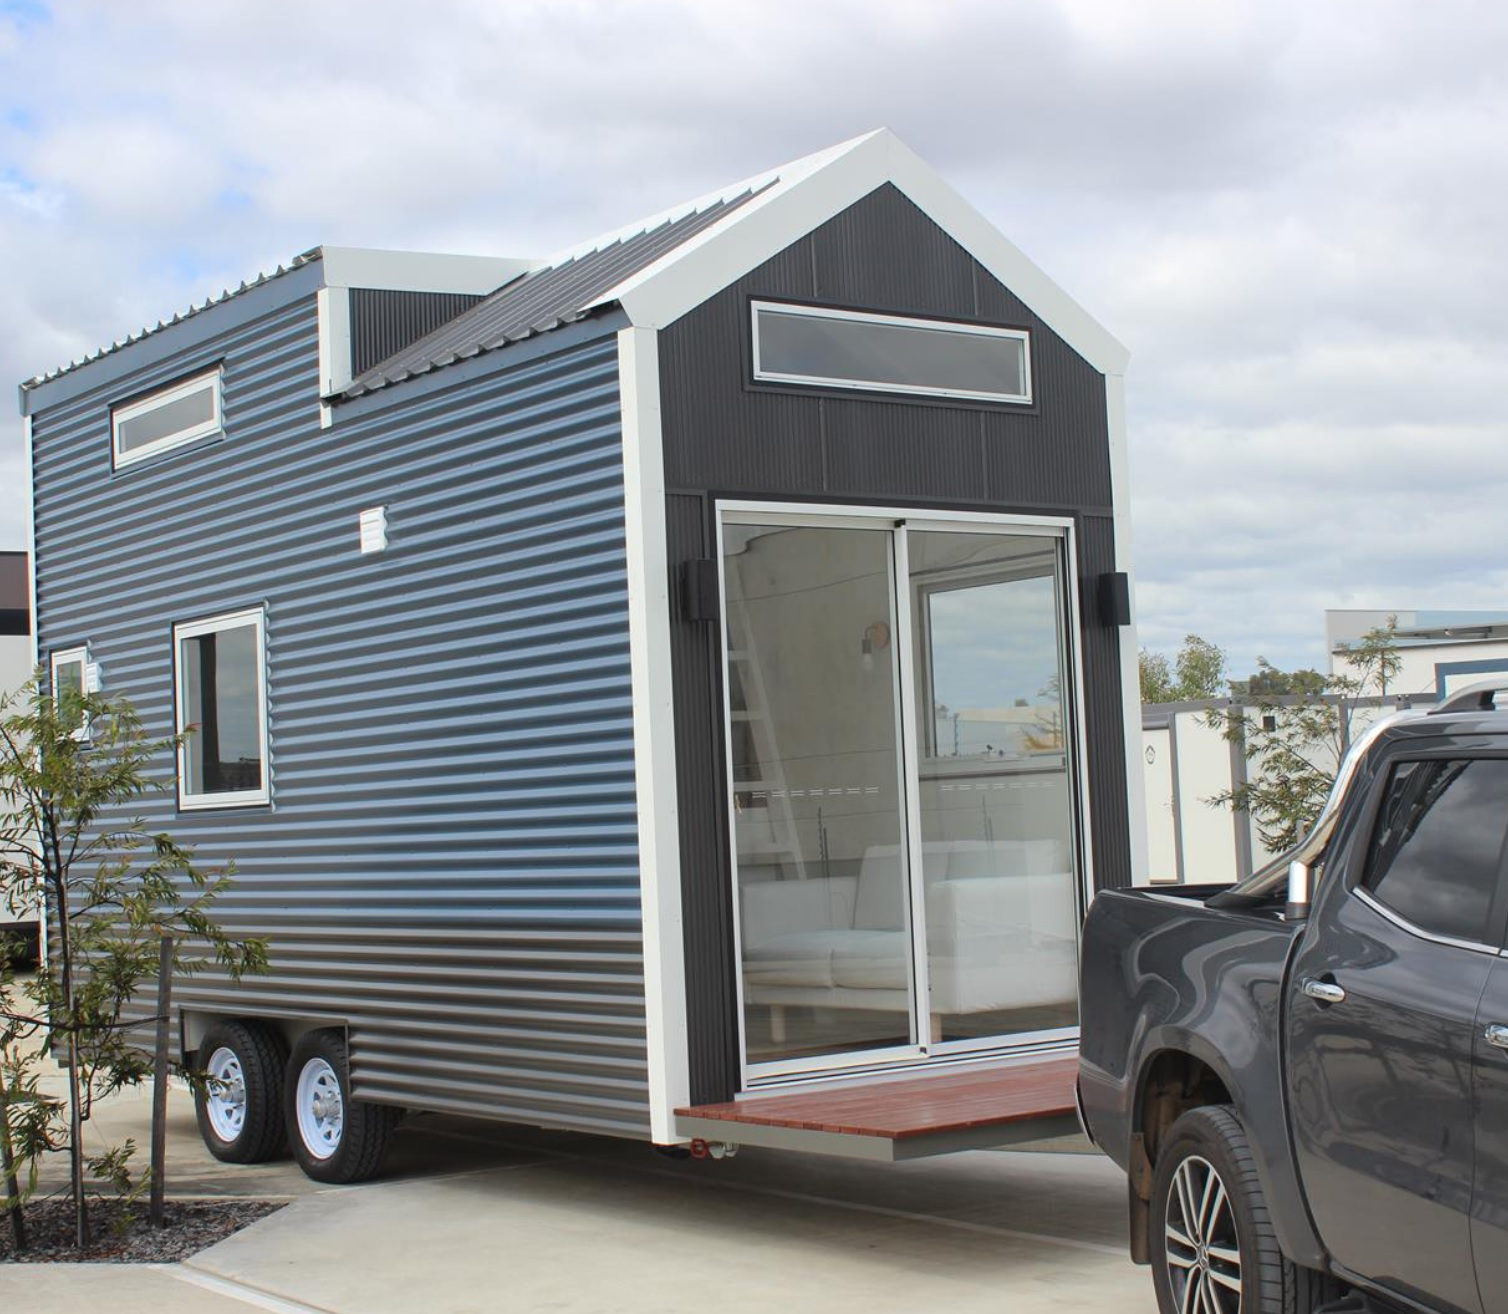 The tiny homes revolution